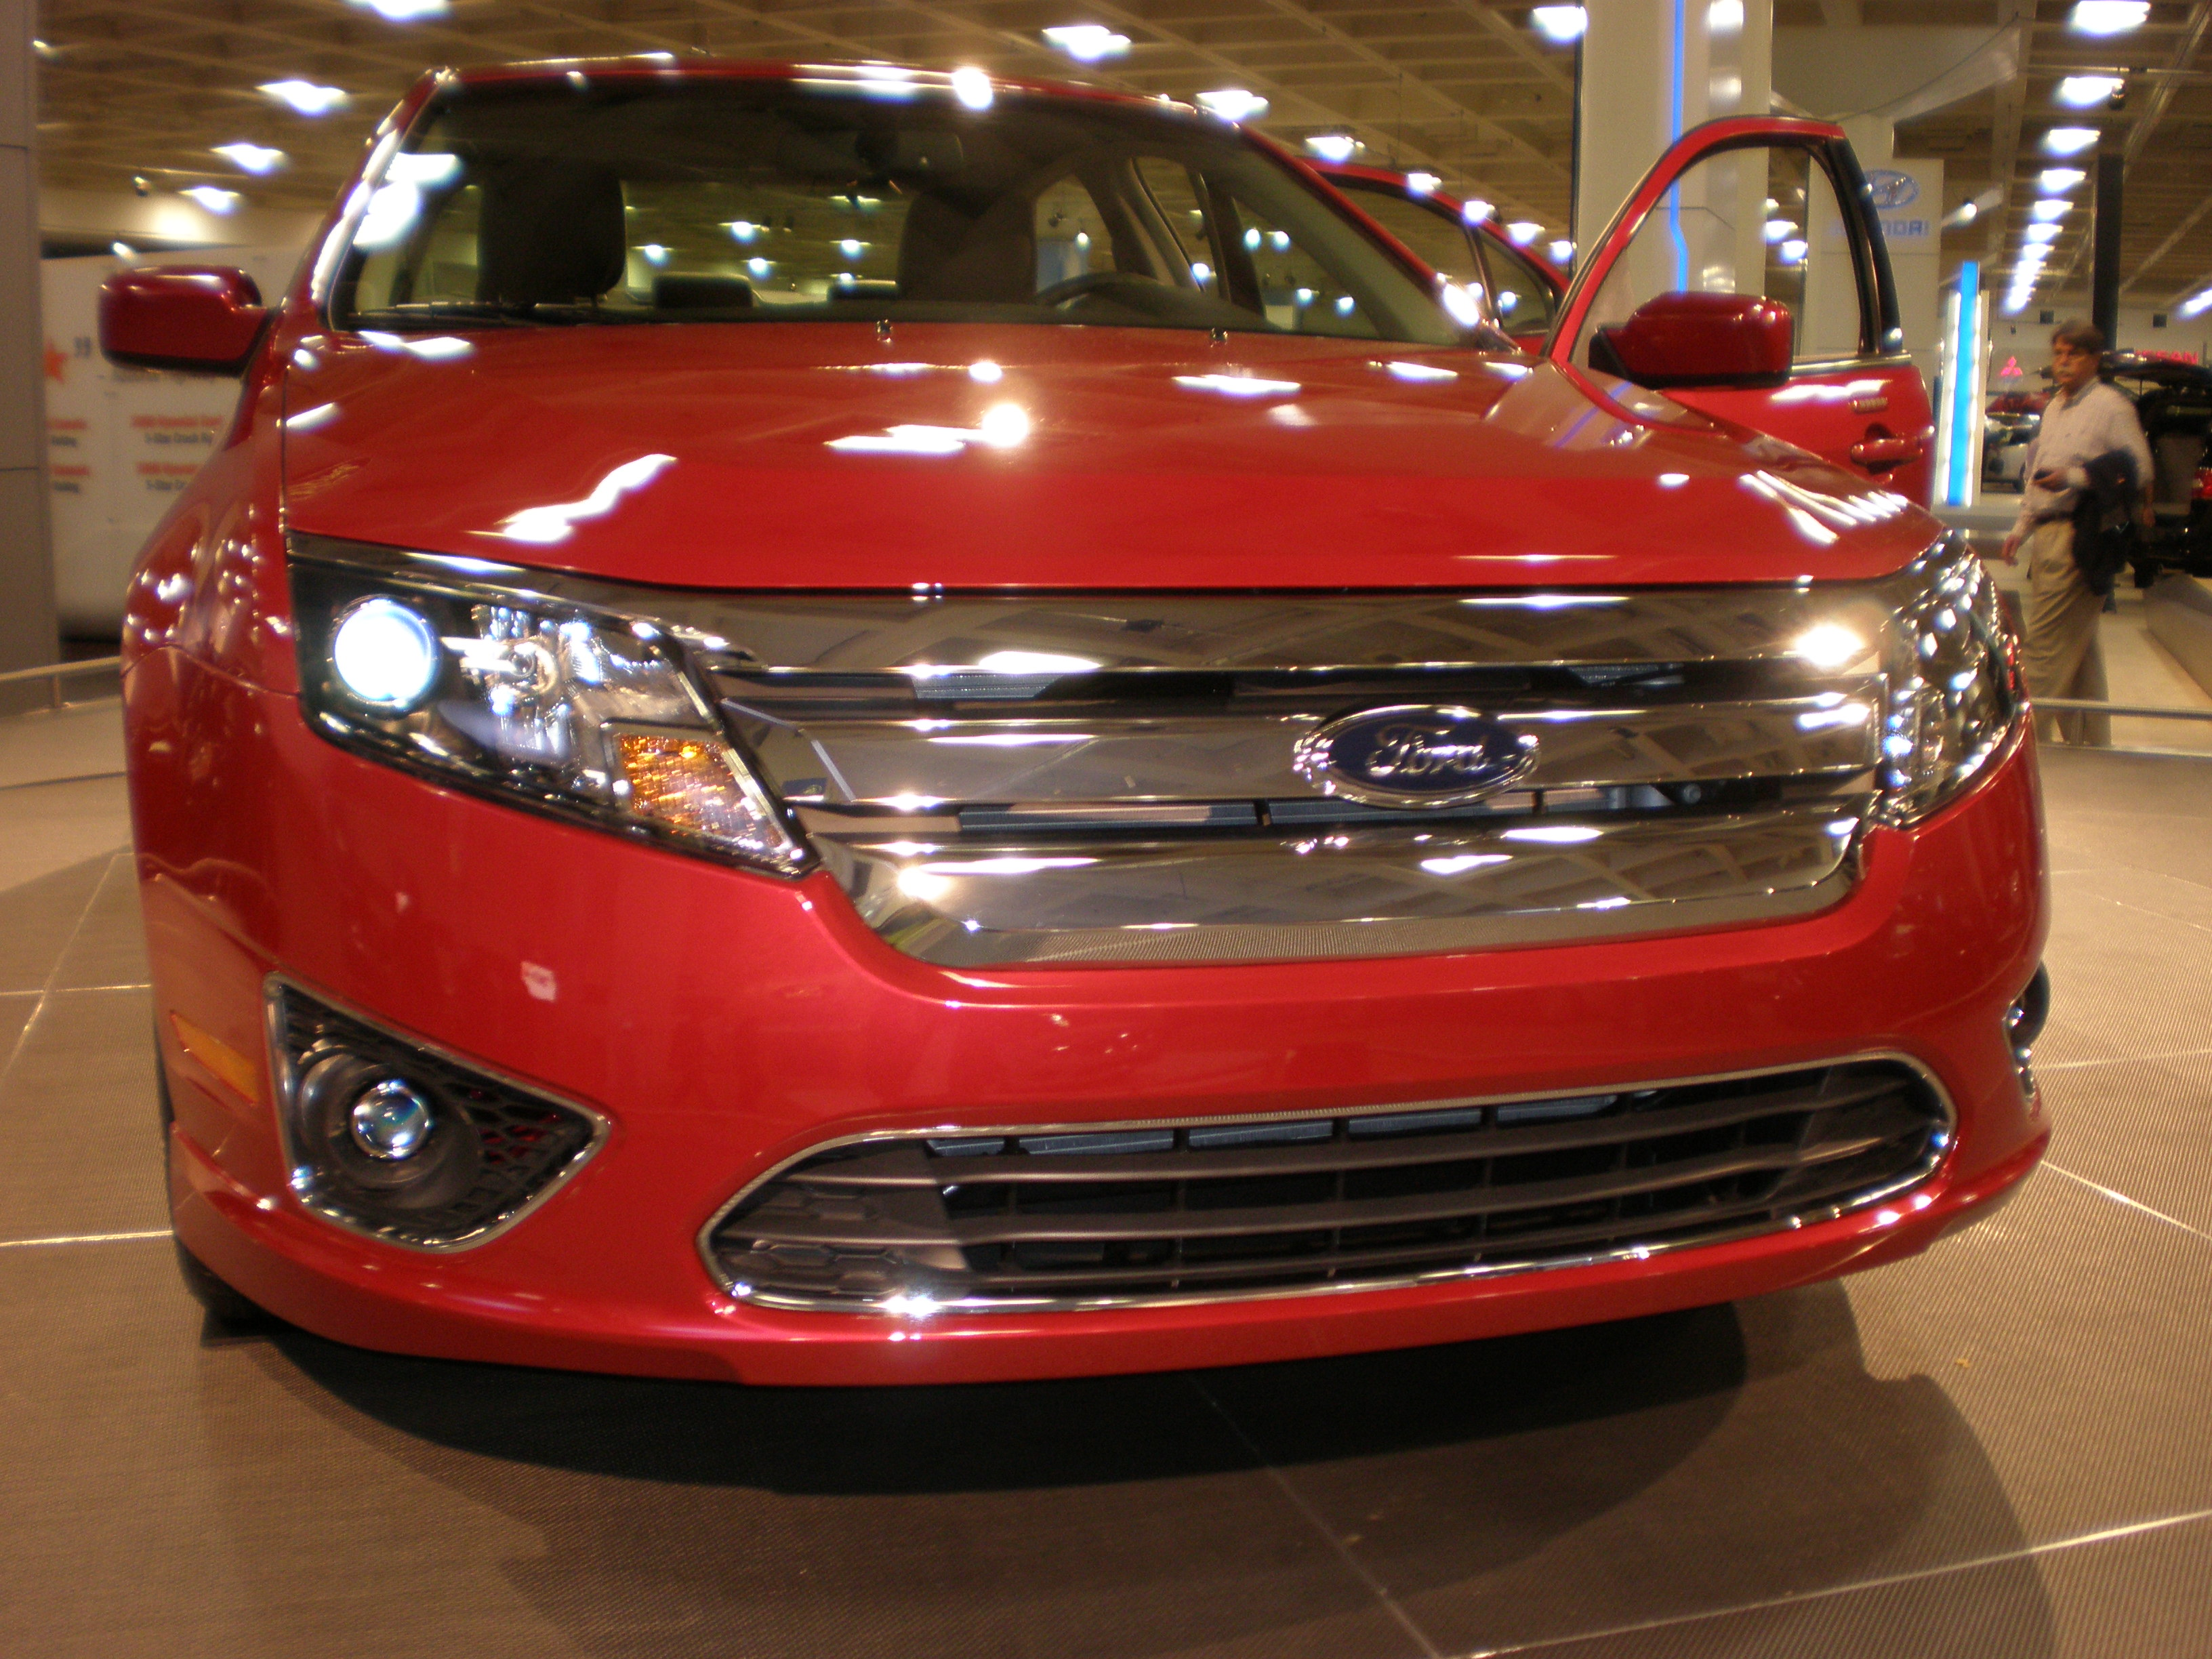 File:2010 red Ford Fusion front.JPG - Wikimedia Commons